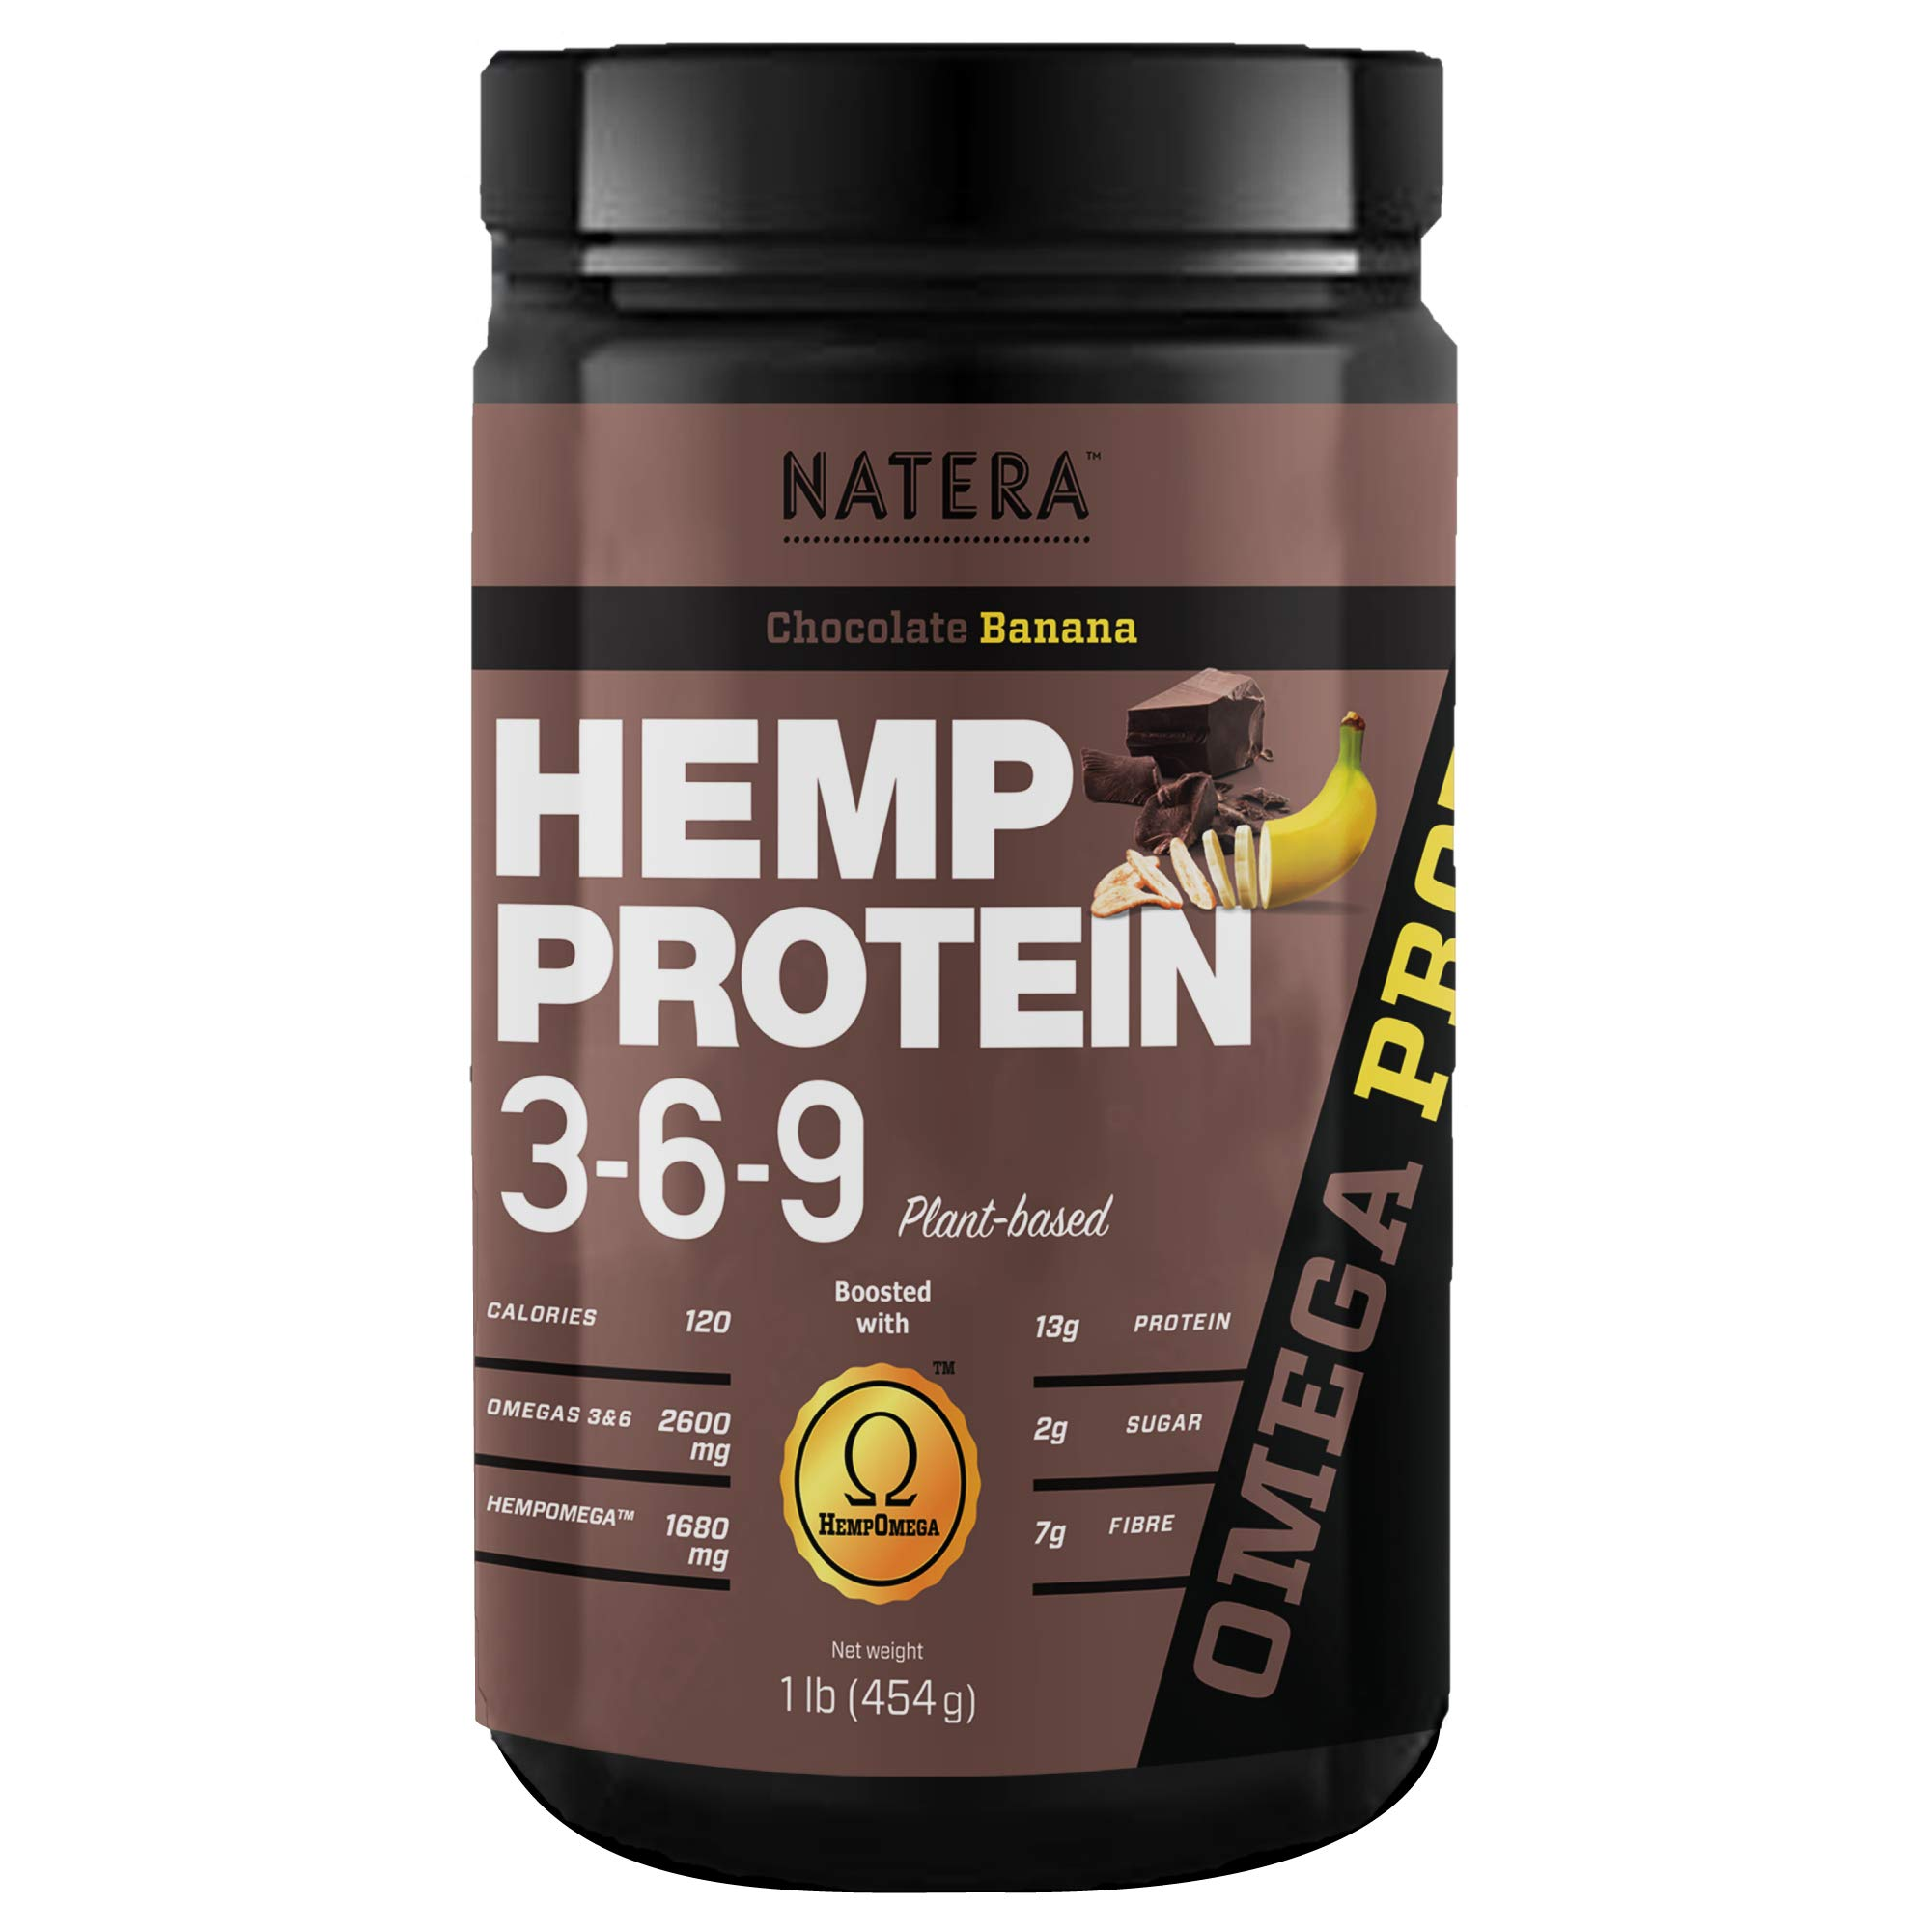 No1 Hemp Protein Powder 369 + Ginseng Extract (1lbs) Chocolate Banana NATERA Unique Patented Formula. Omega 3 and 6 Plant Based Vegan Supplement